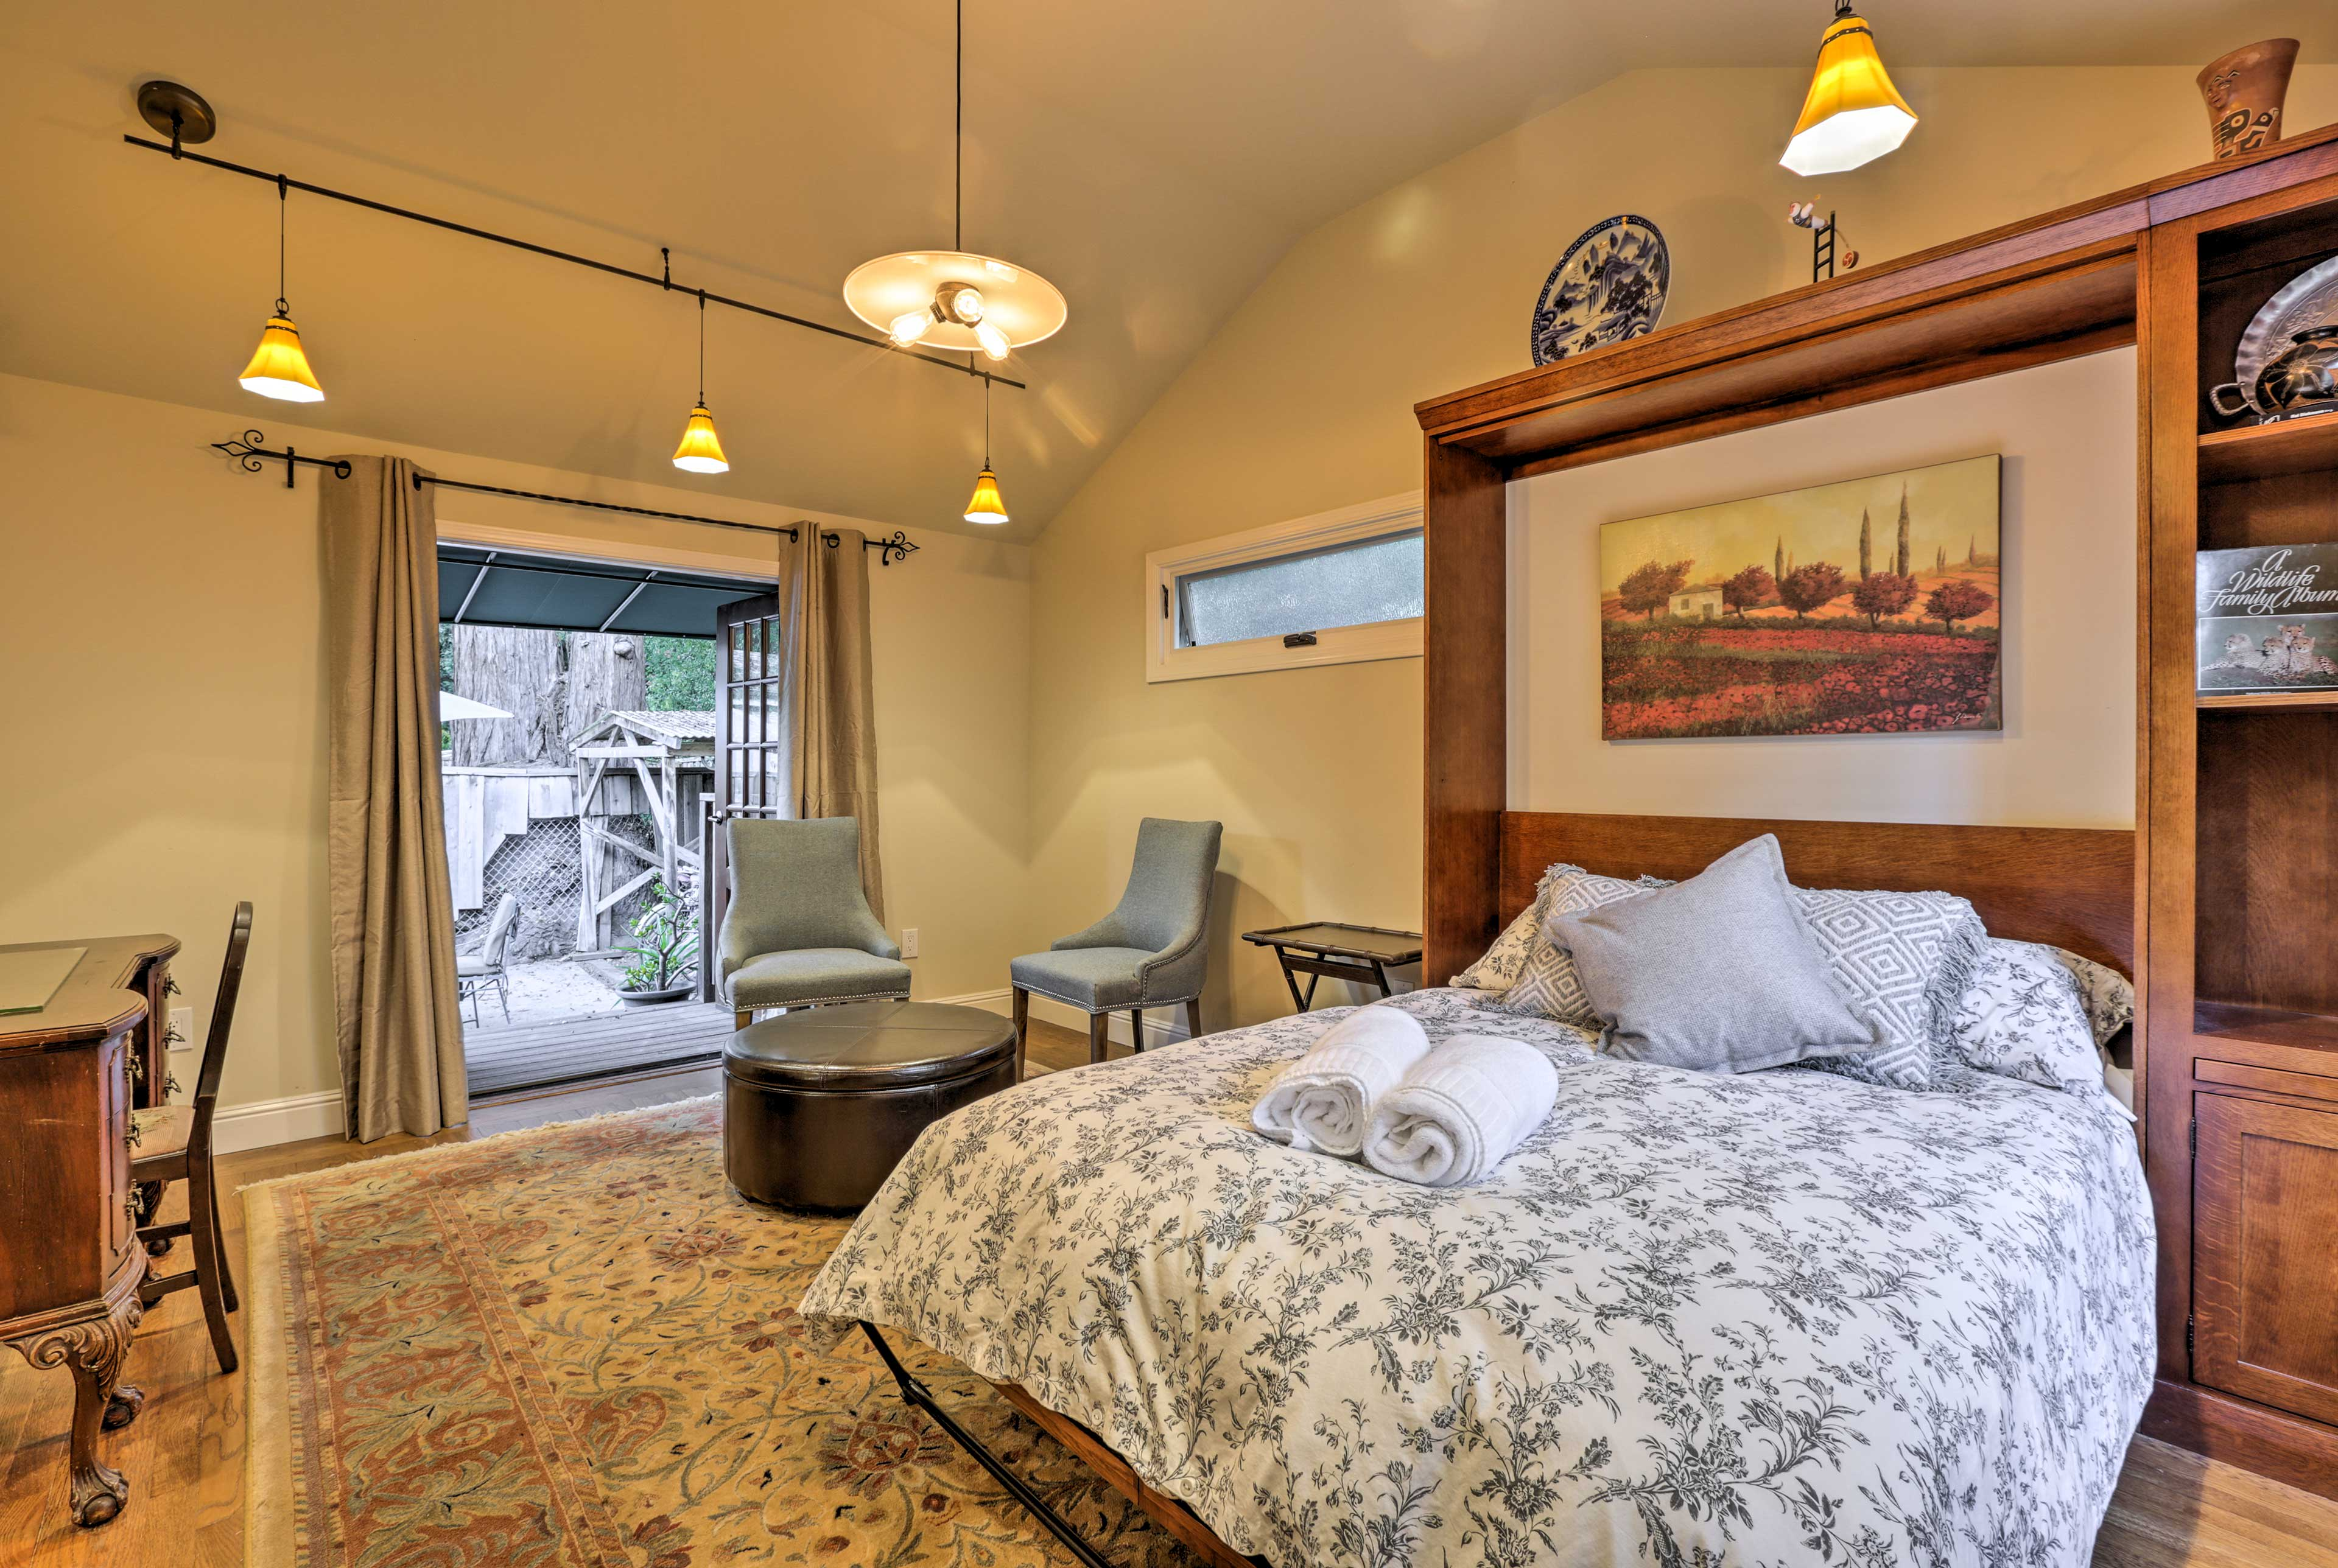 Enjoy peaceful slumbers from the full-sized bed in the bedroom.